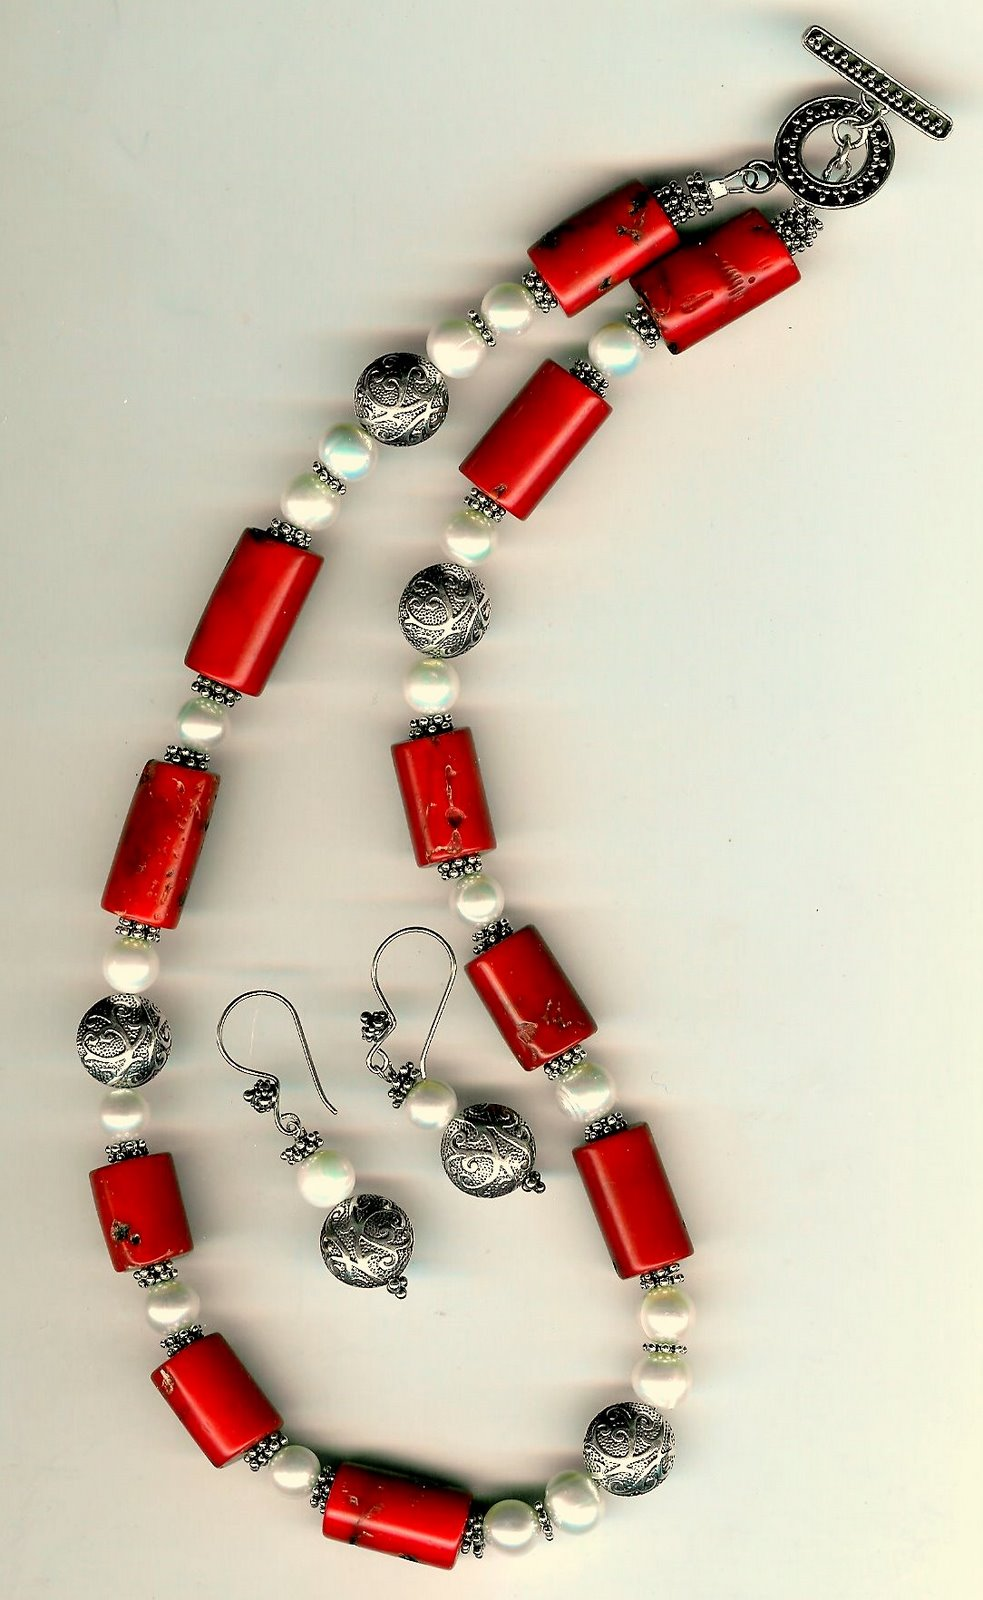 109. Coral, Freshwater Pearls with Bali Sterling Siver + Earrings